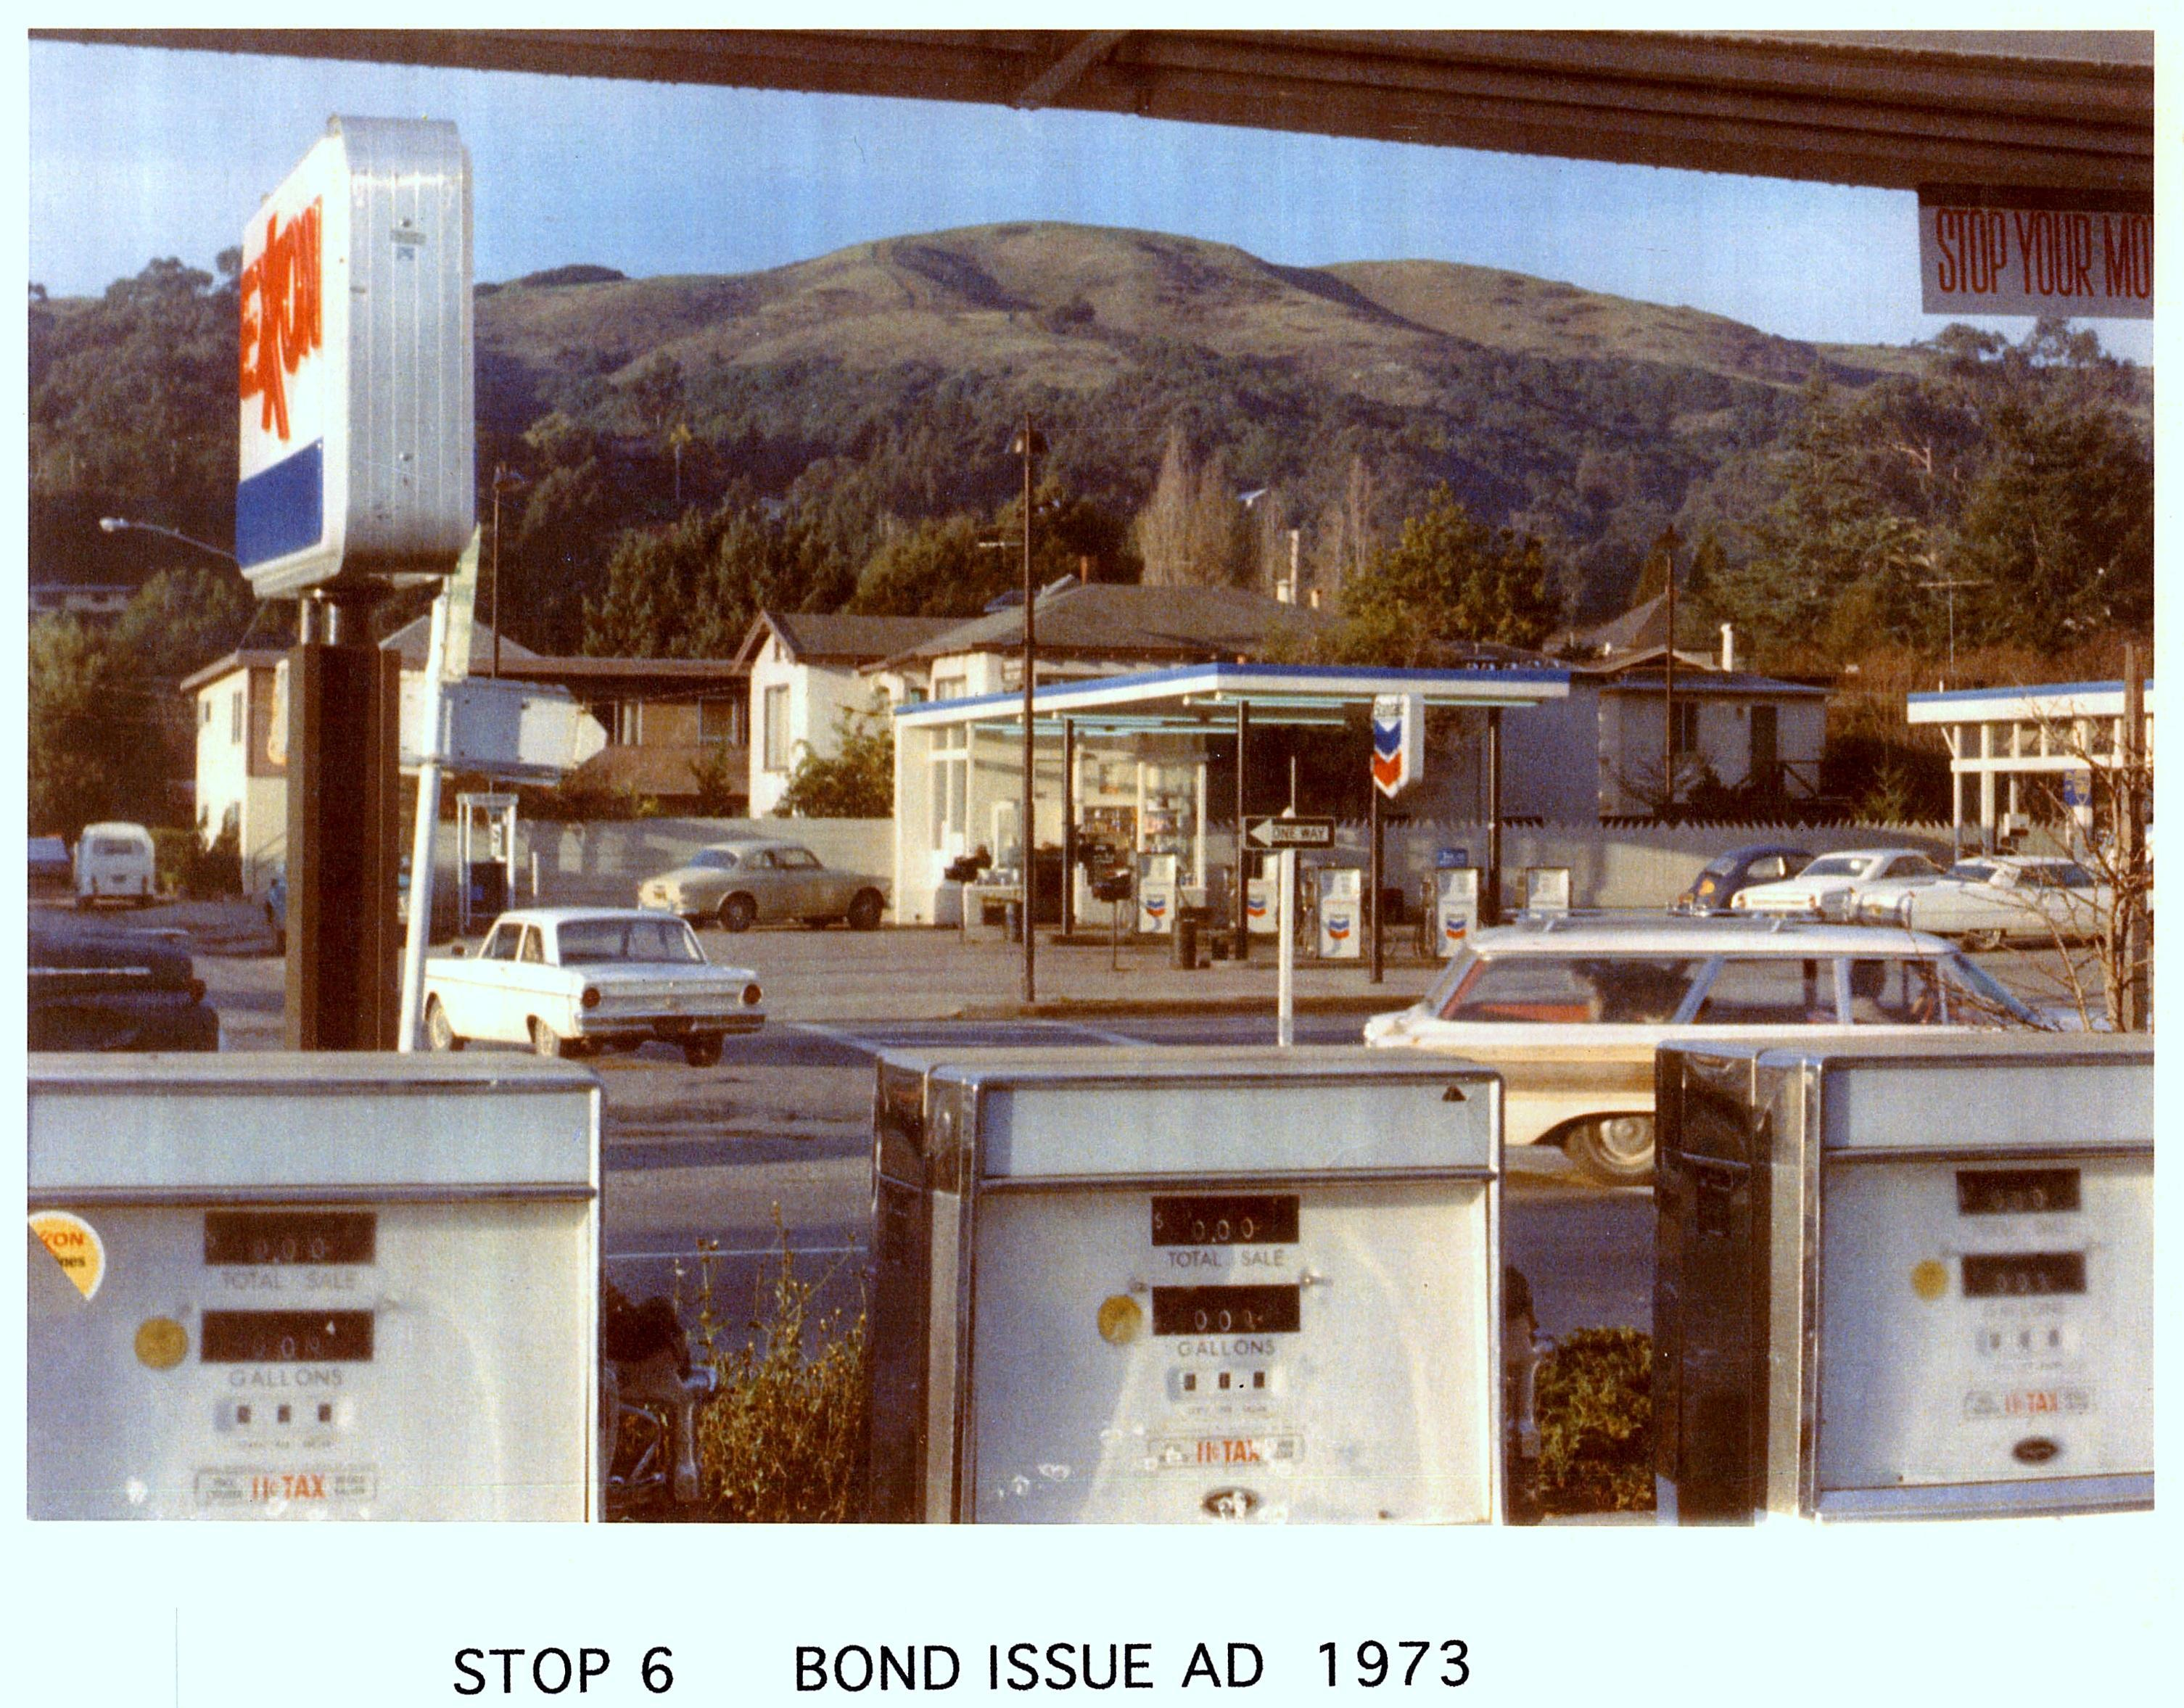 Exxon and Chevron Stations — 1973